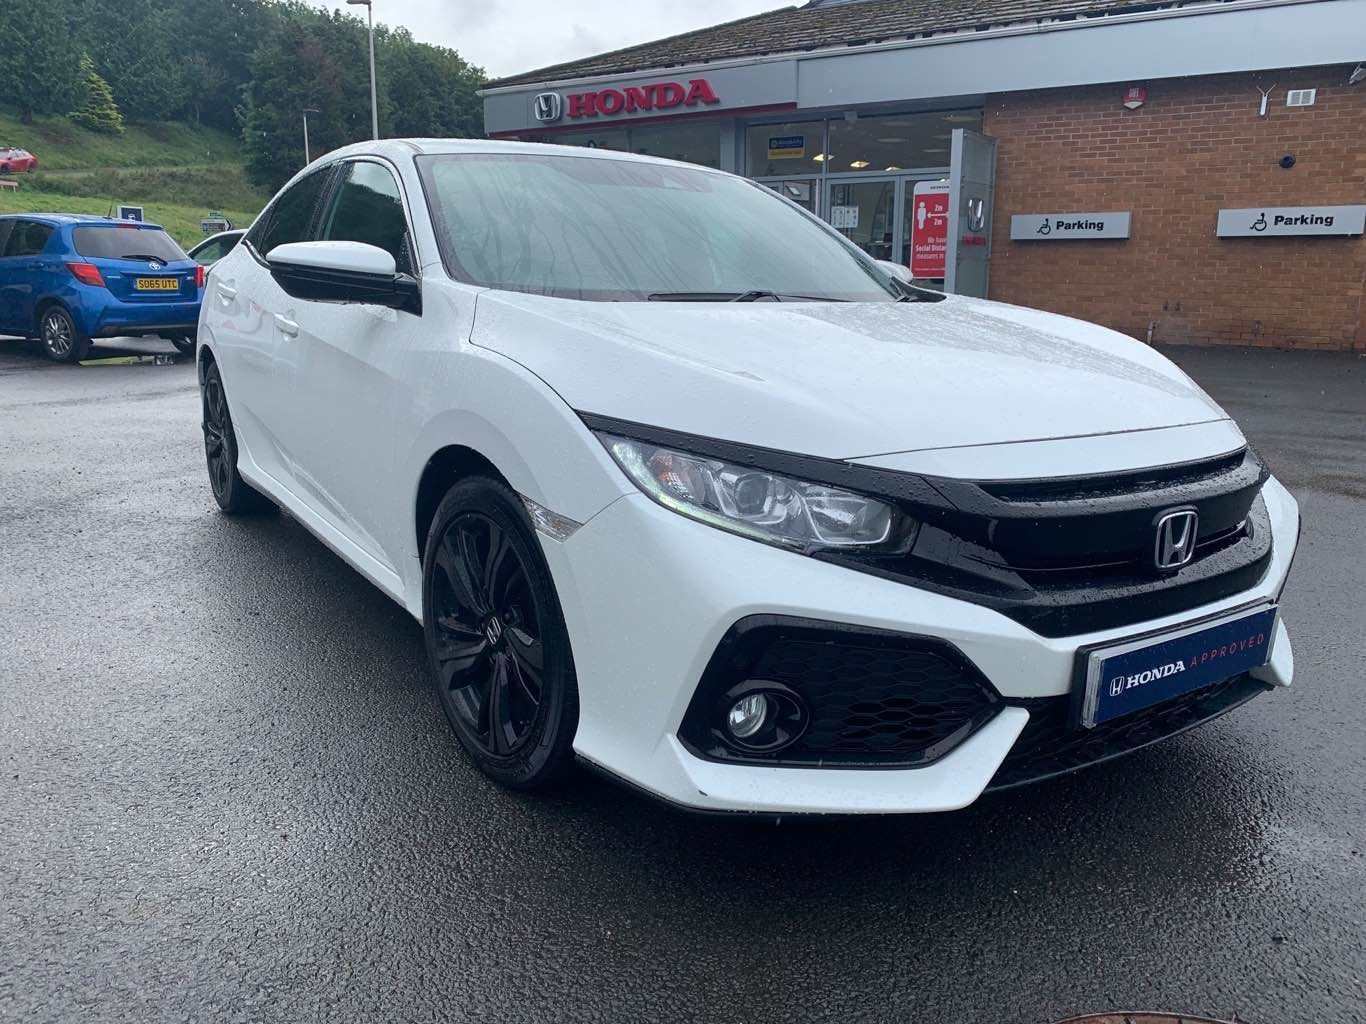 Honda Civic 1.0I VTEC Turbo SR